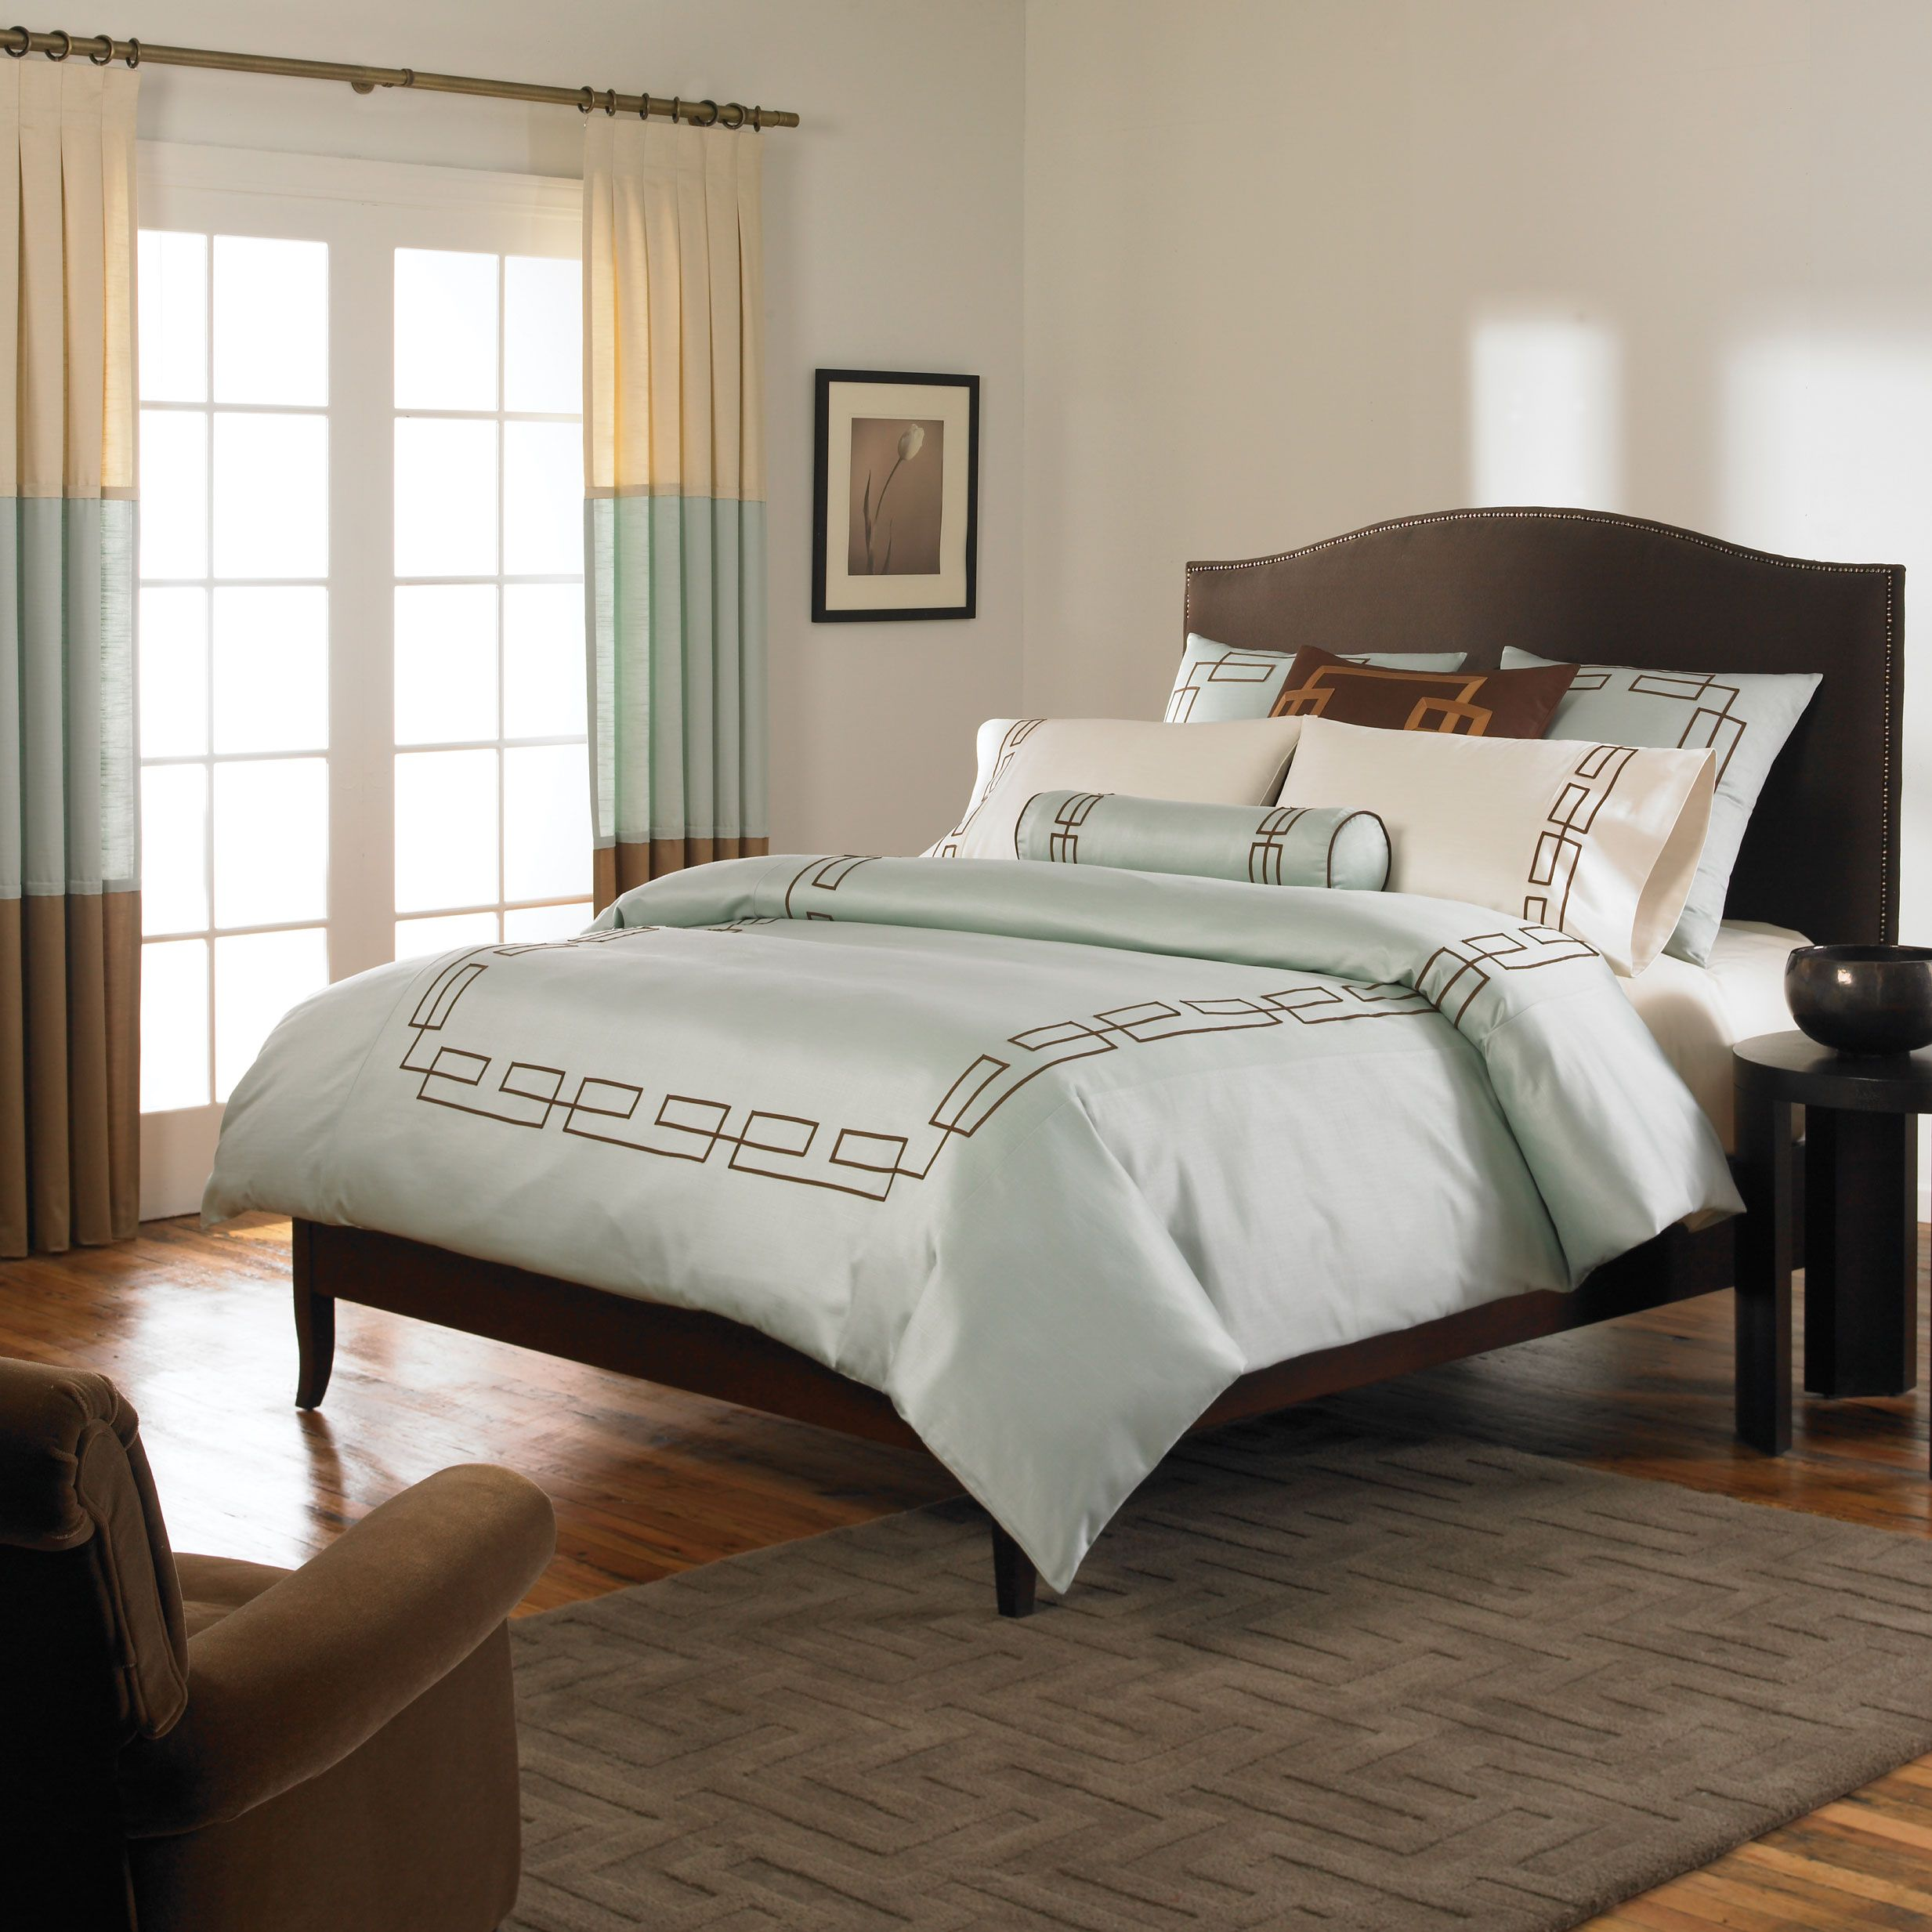 pin by wildcat territory on collection bedding from wildcat  - find this pin and more on collection bedding from wildcat territory bywildcatny